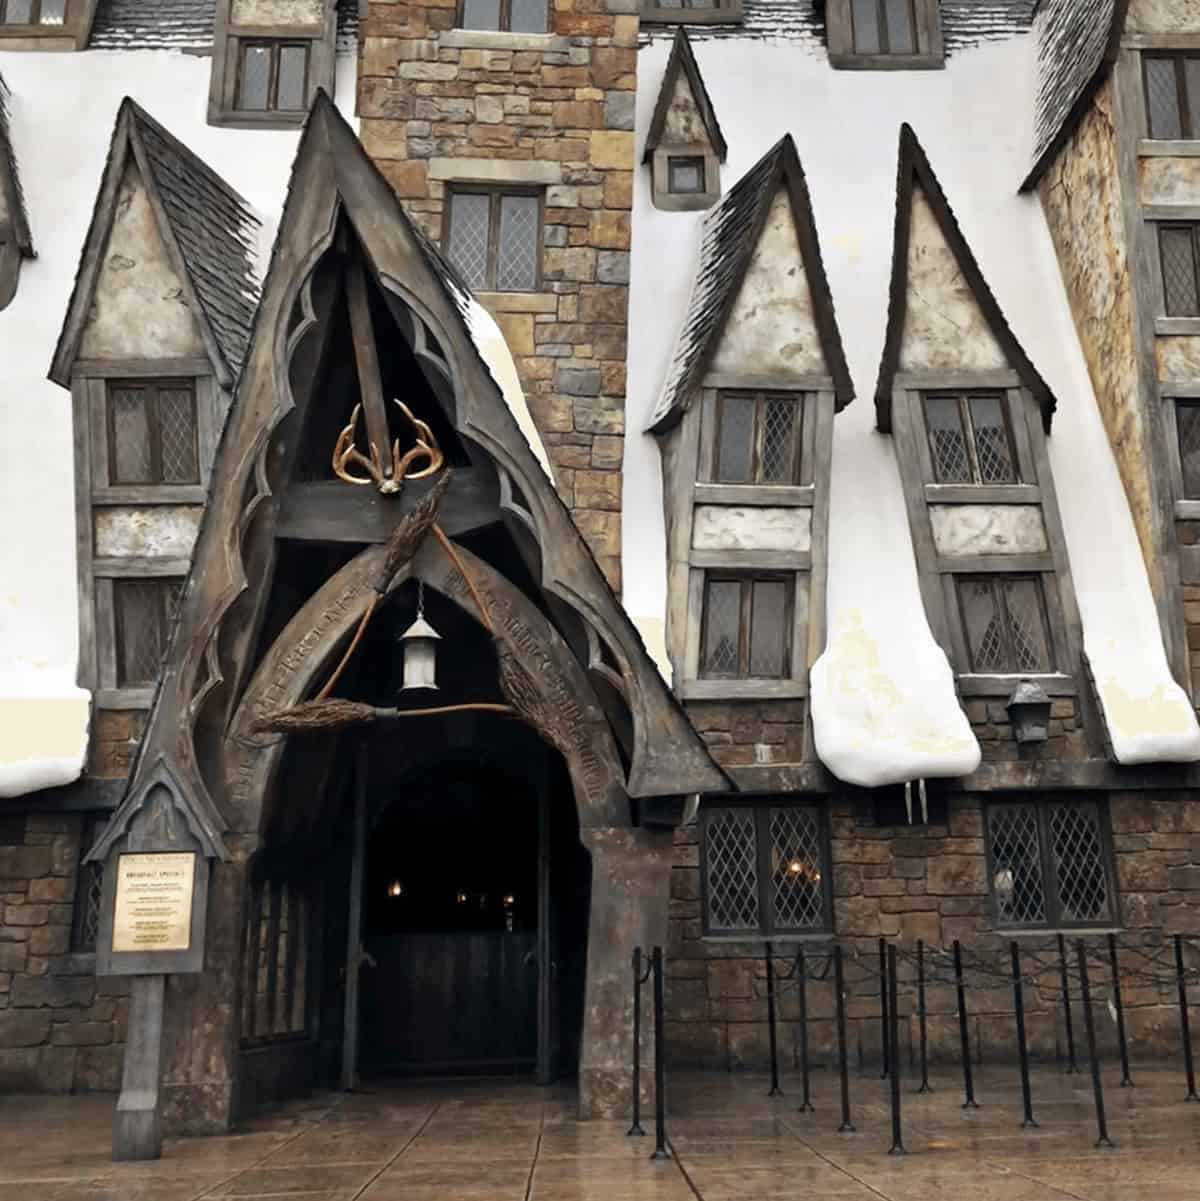 Wizarding World of Harry Potter Tips - Universal Orlando Tips: Should you get the Universal Express Unlimited? Is Universals early entry worth it? Compare Universal Studio hotels and more. Great mom-to-mom tips for planning your family vacation to Orlando. #HarryPotterWorld #UniversalOrlando #FamilyTravel #UniversalStudios #Orlando #Florida *Pinning this REAL parent advice for our trip! So helpful. How cool is this? You can eat at The Three Broomsticks!